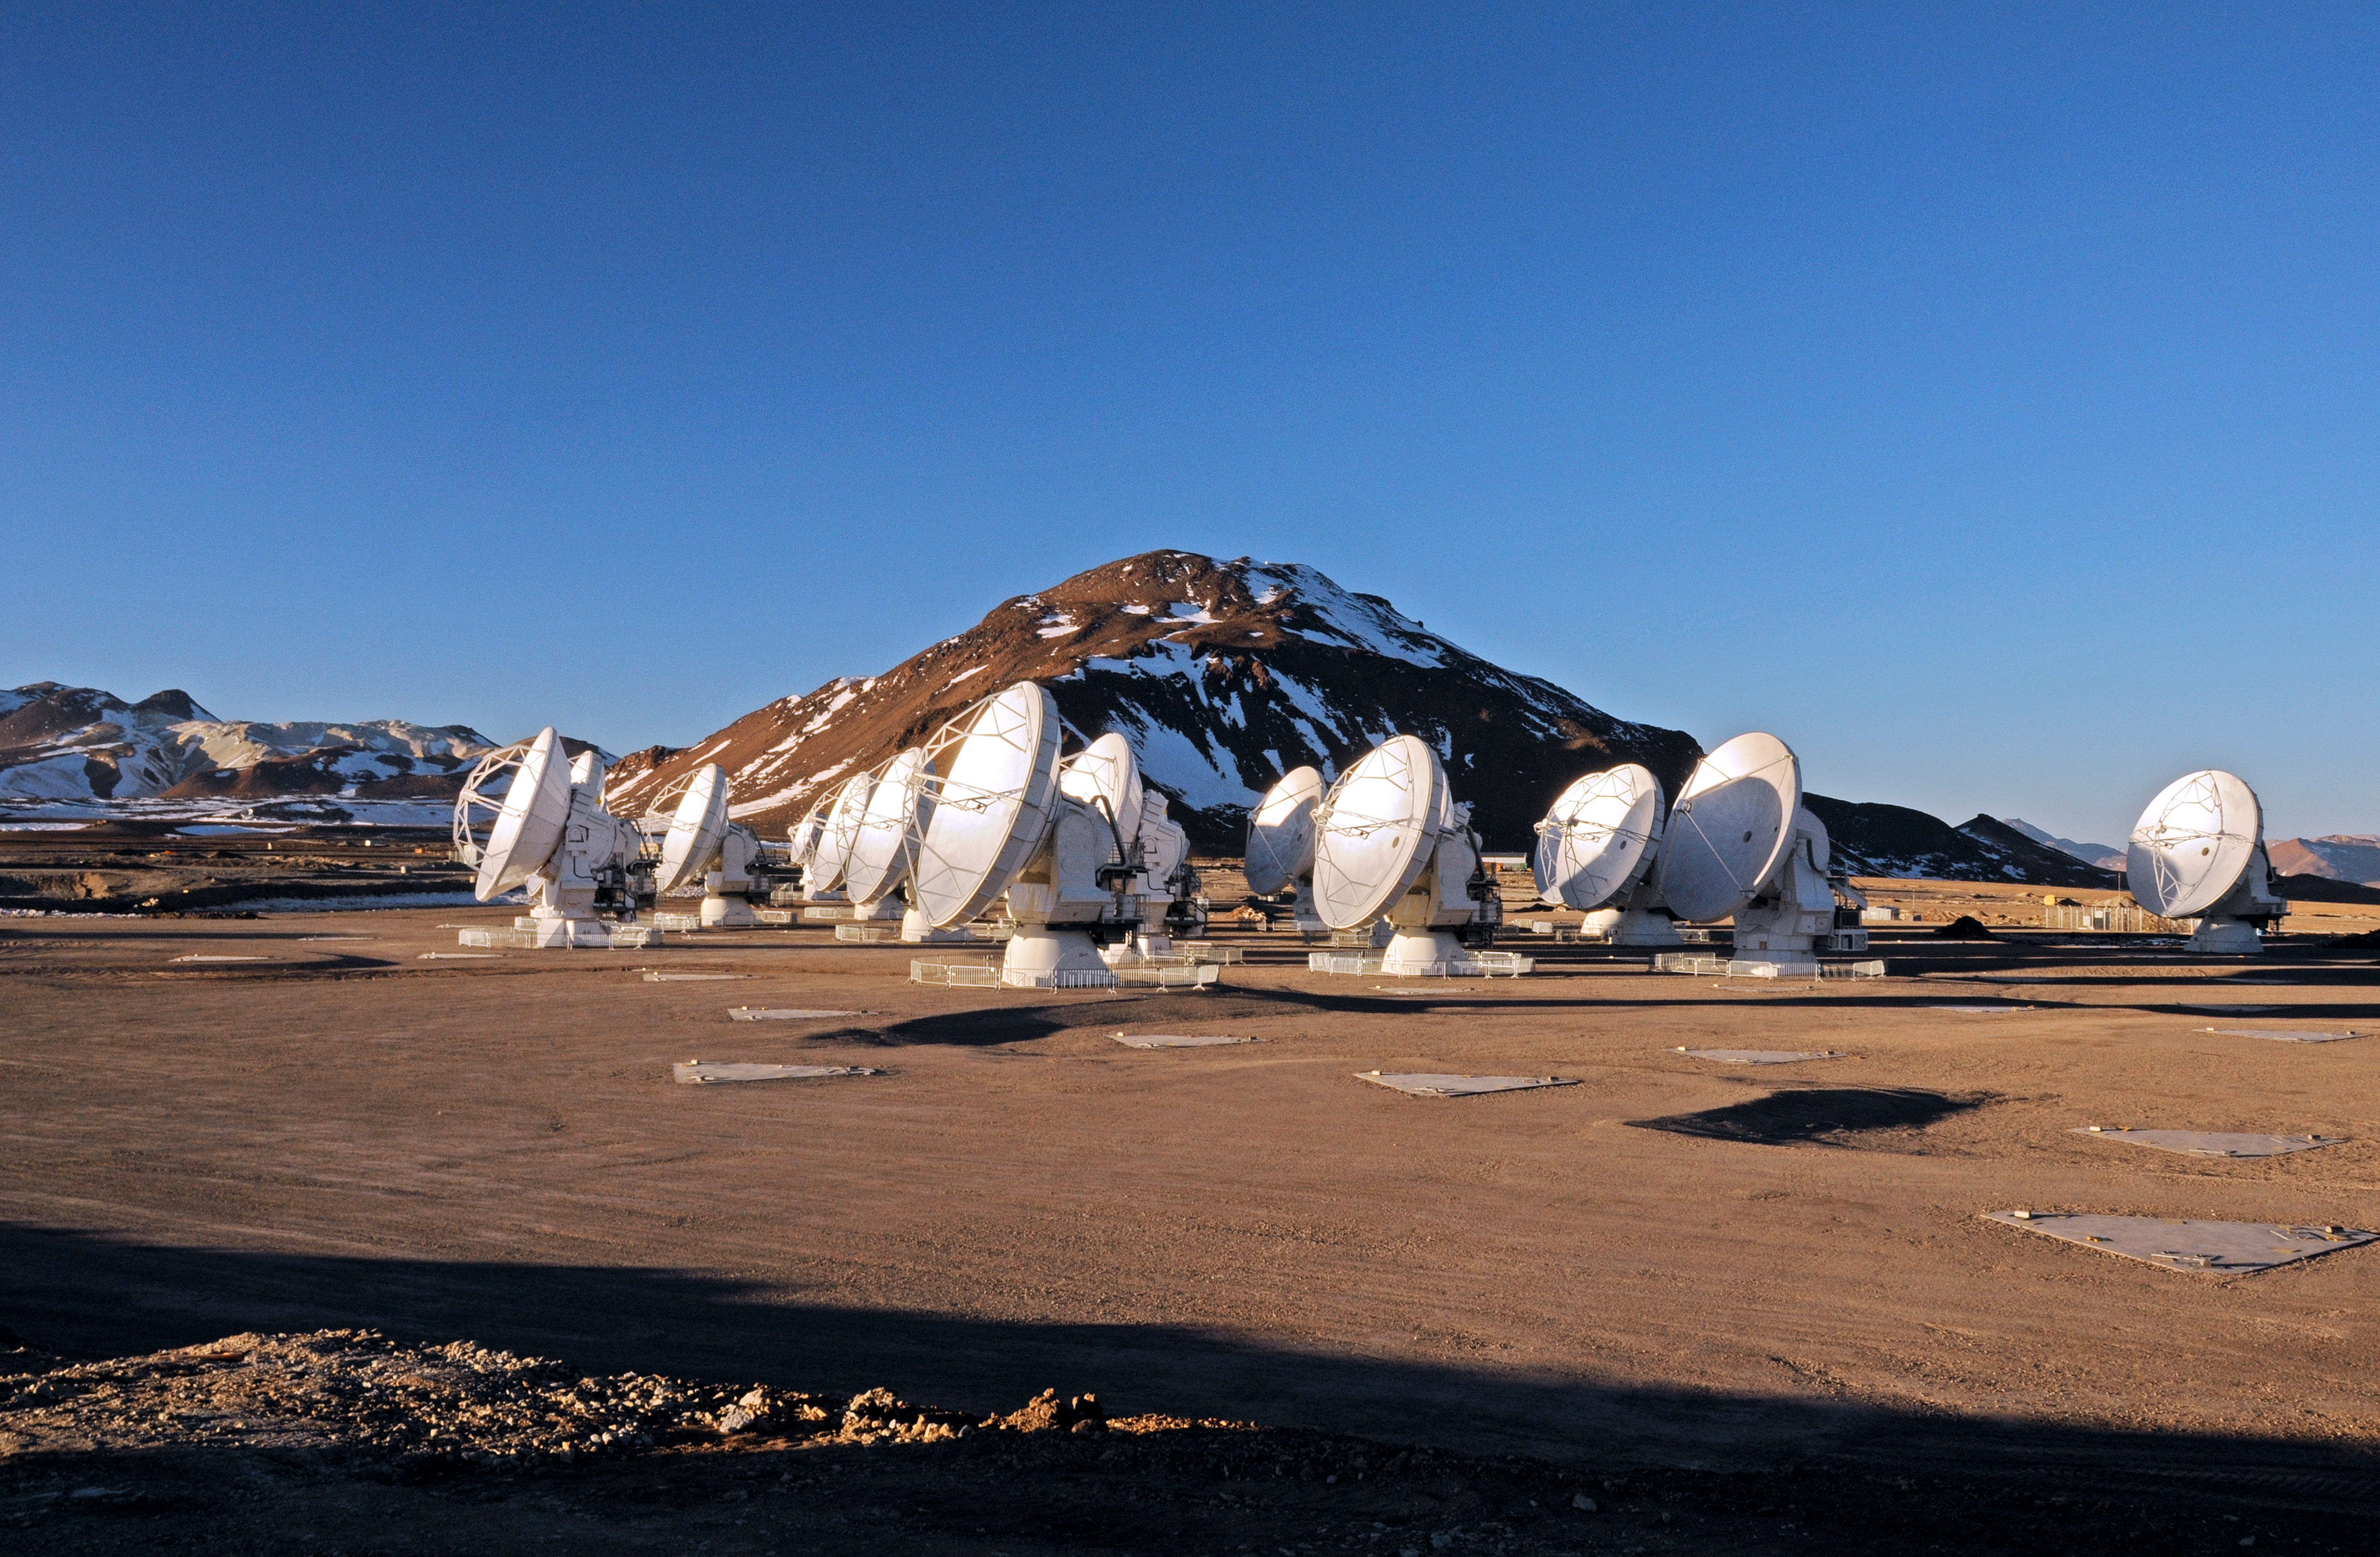 Nineteen ALMA antennas on the Chajnantor plateau | ESO Norge